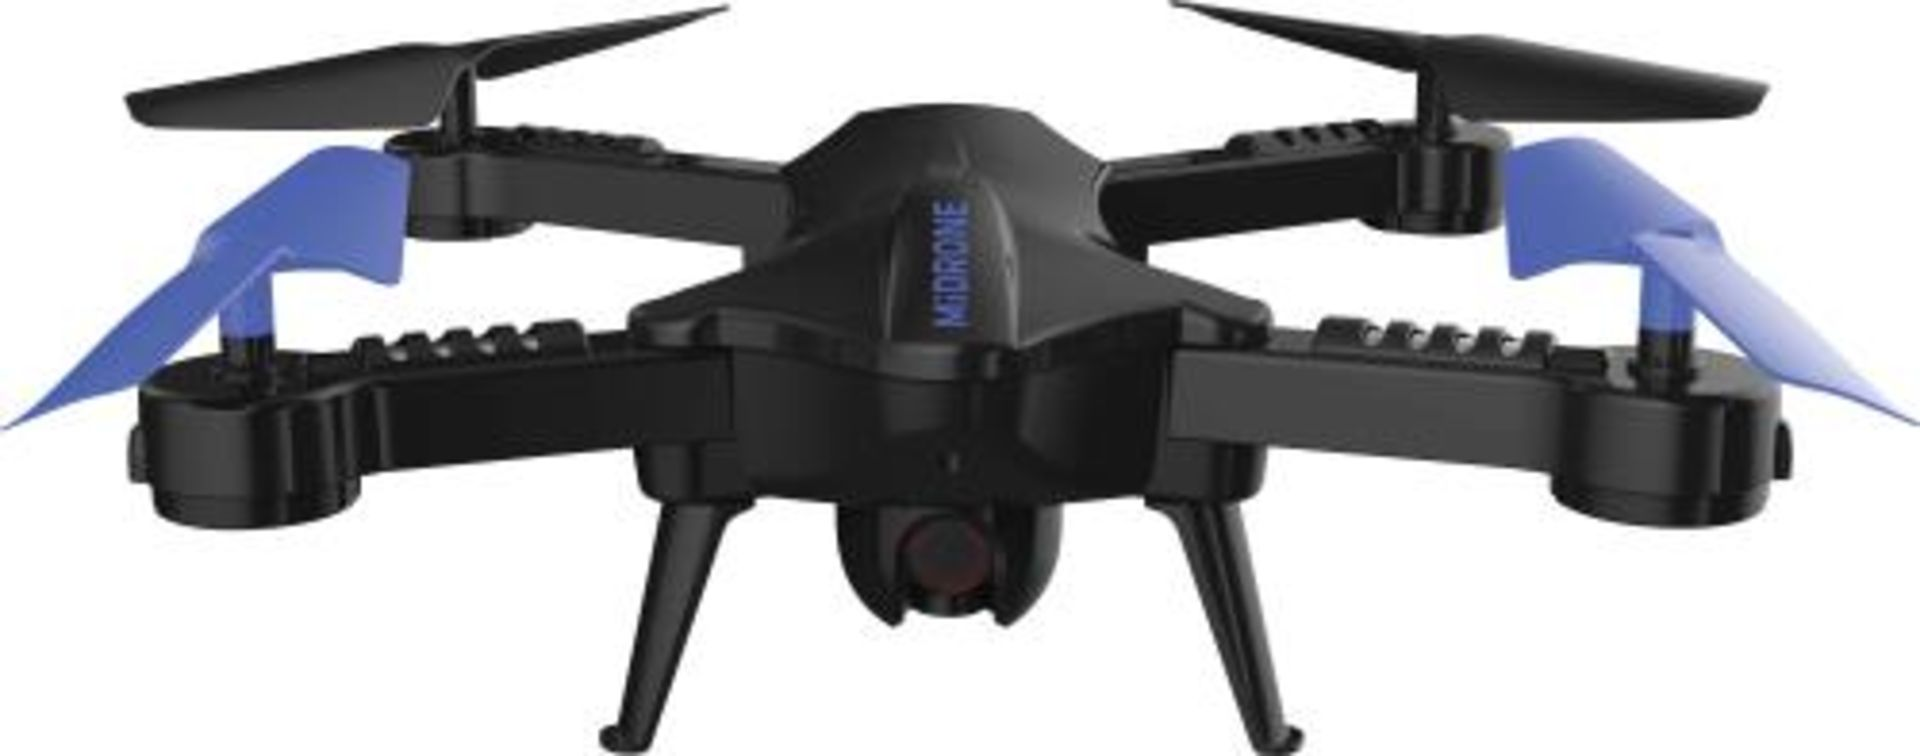 Lot 15780 - V Brand New MiDrone HD WiFi Drone With Intergrated Full HD Camera PLUS VR Kit (Goggles & Case) -